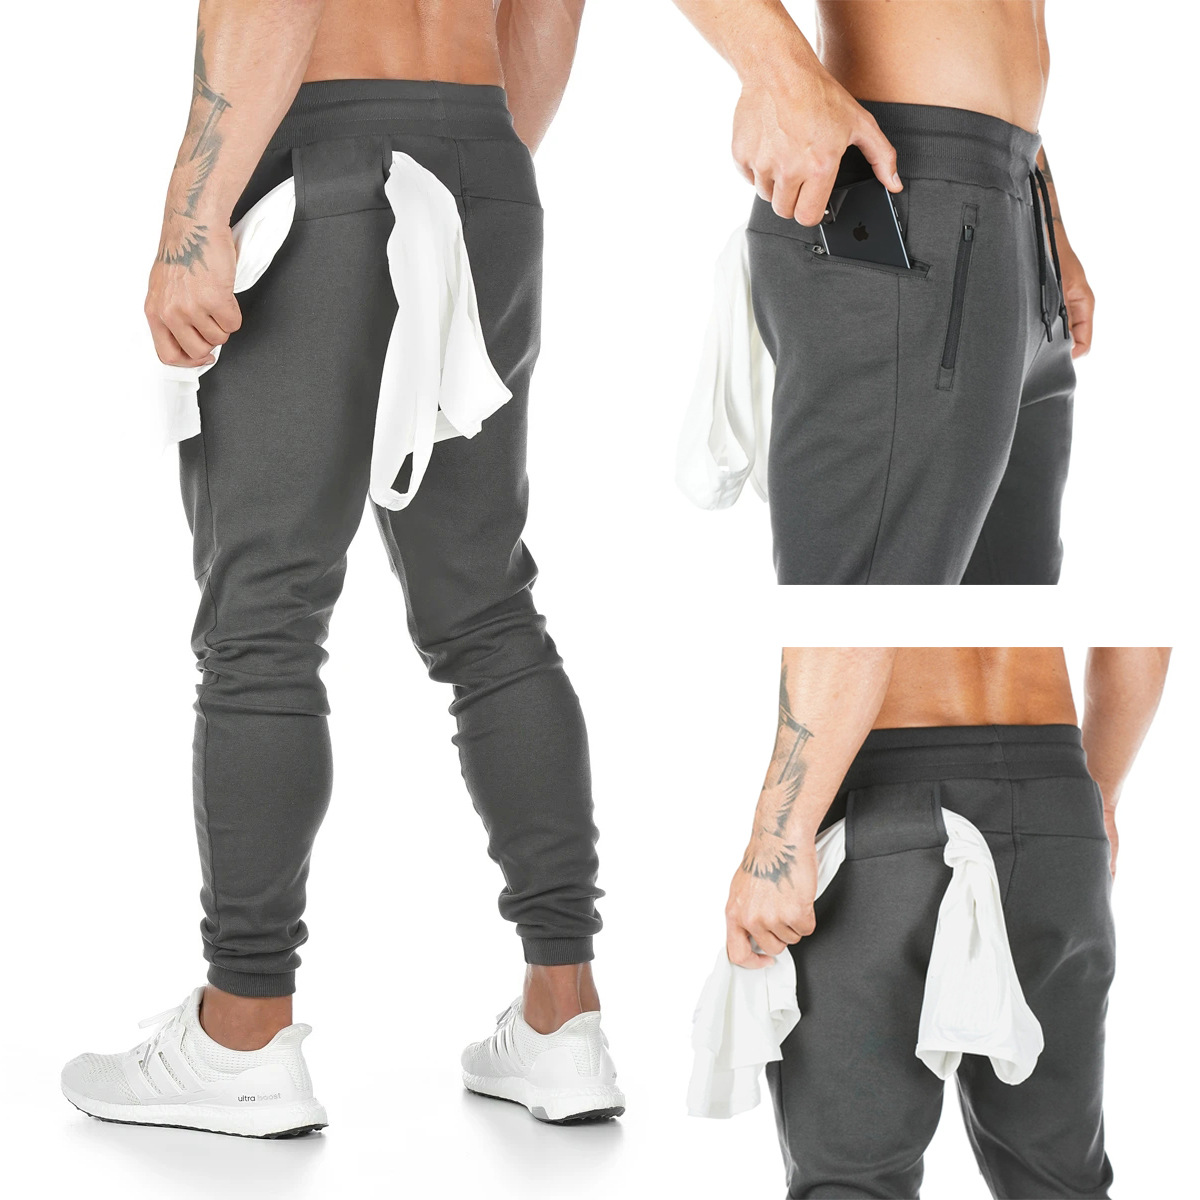 Men's new running fitness trousers